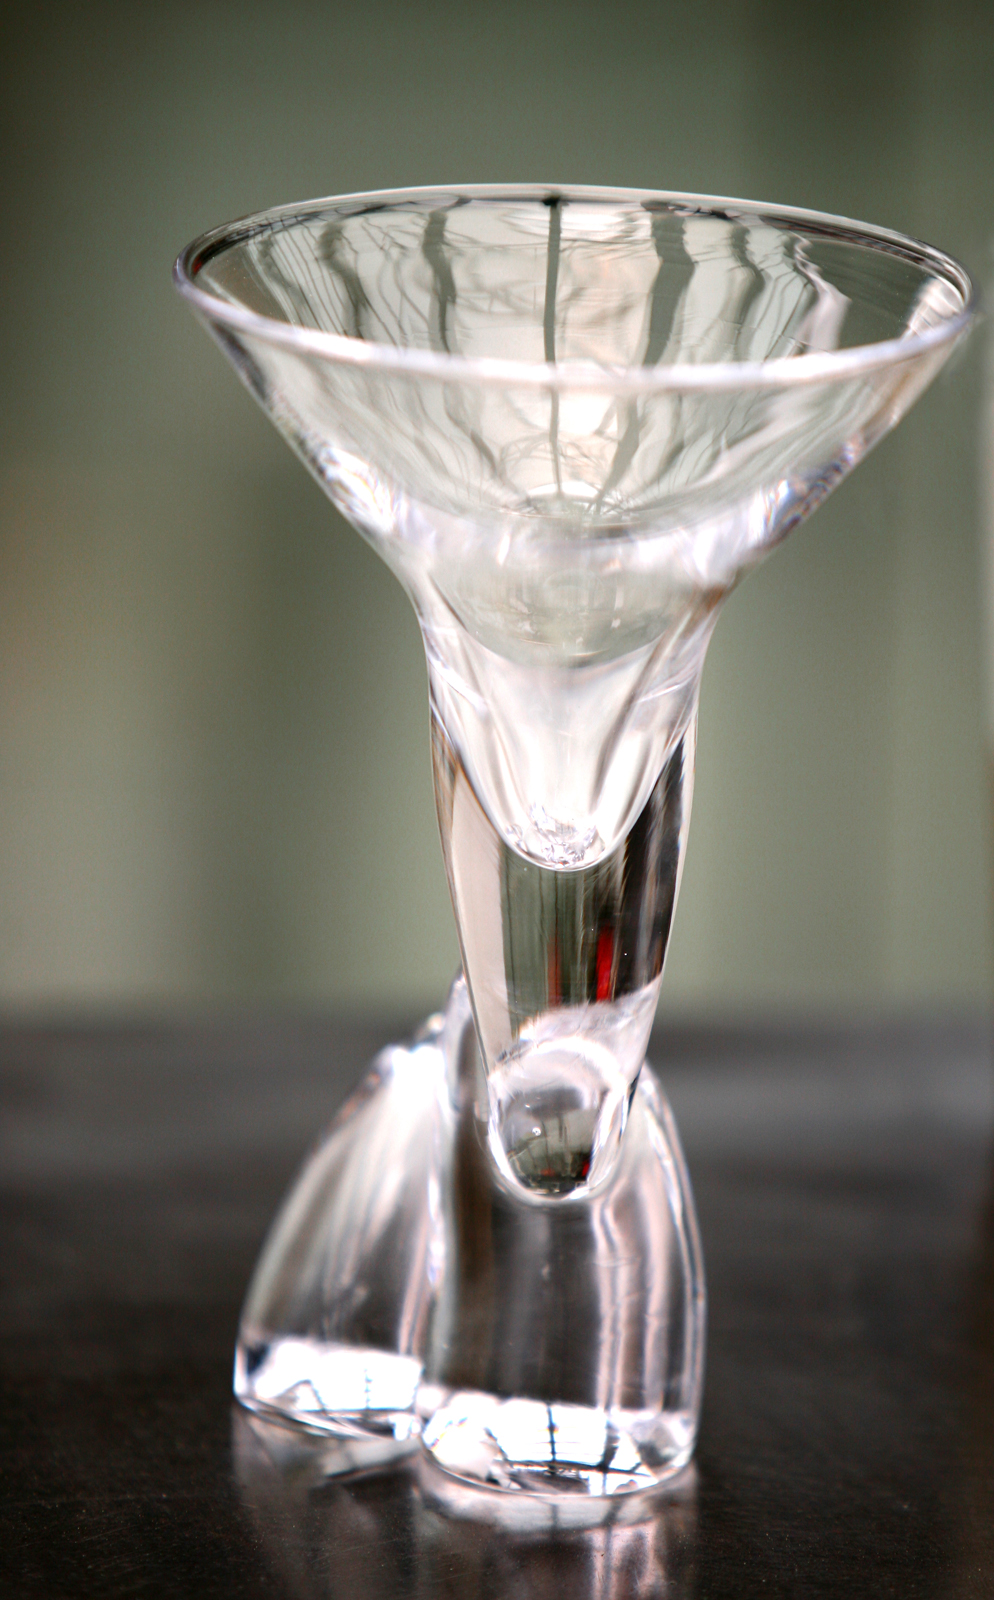 Design prototype by Wendell Castle for GlassLab, 2013